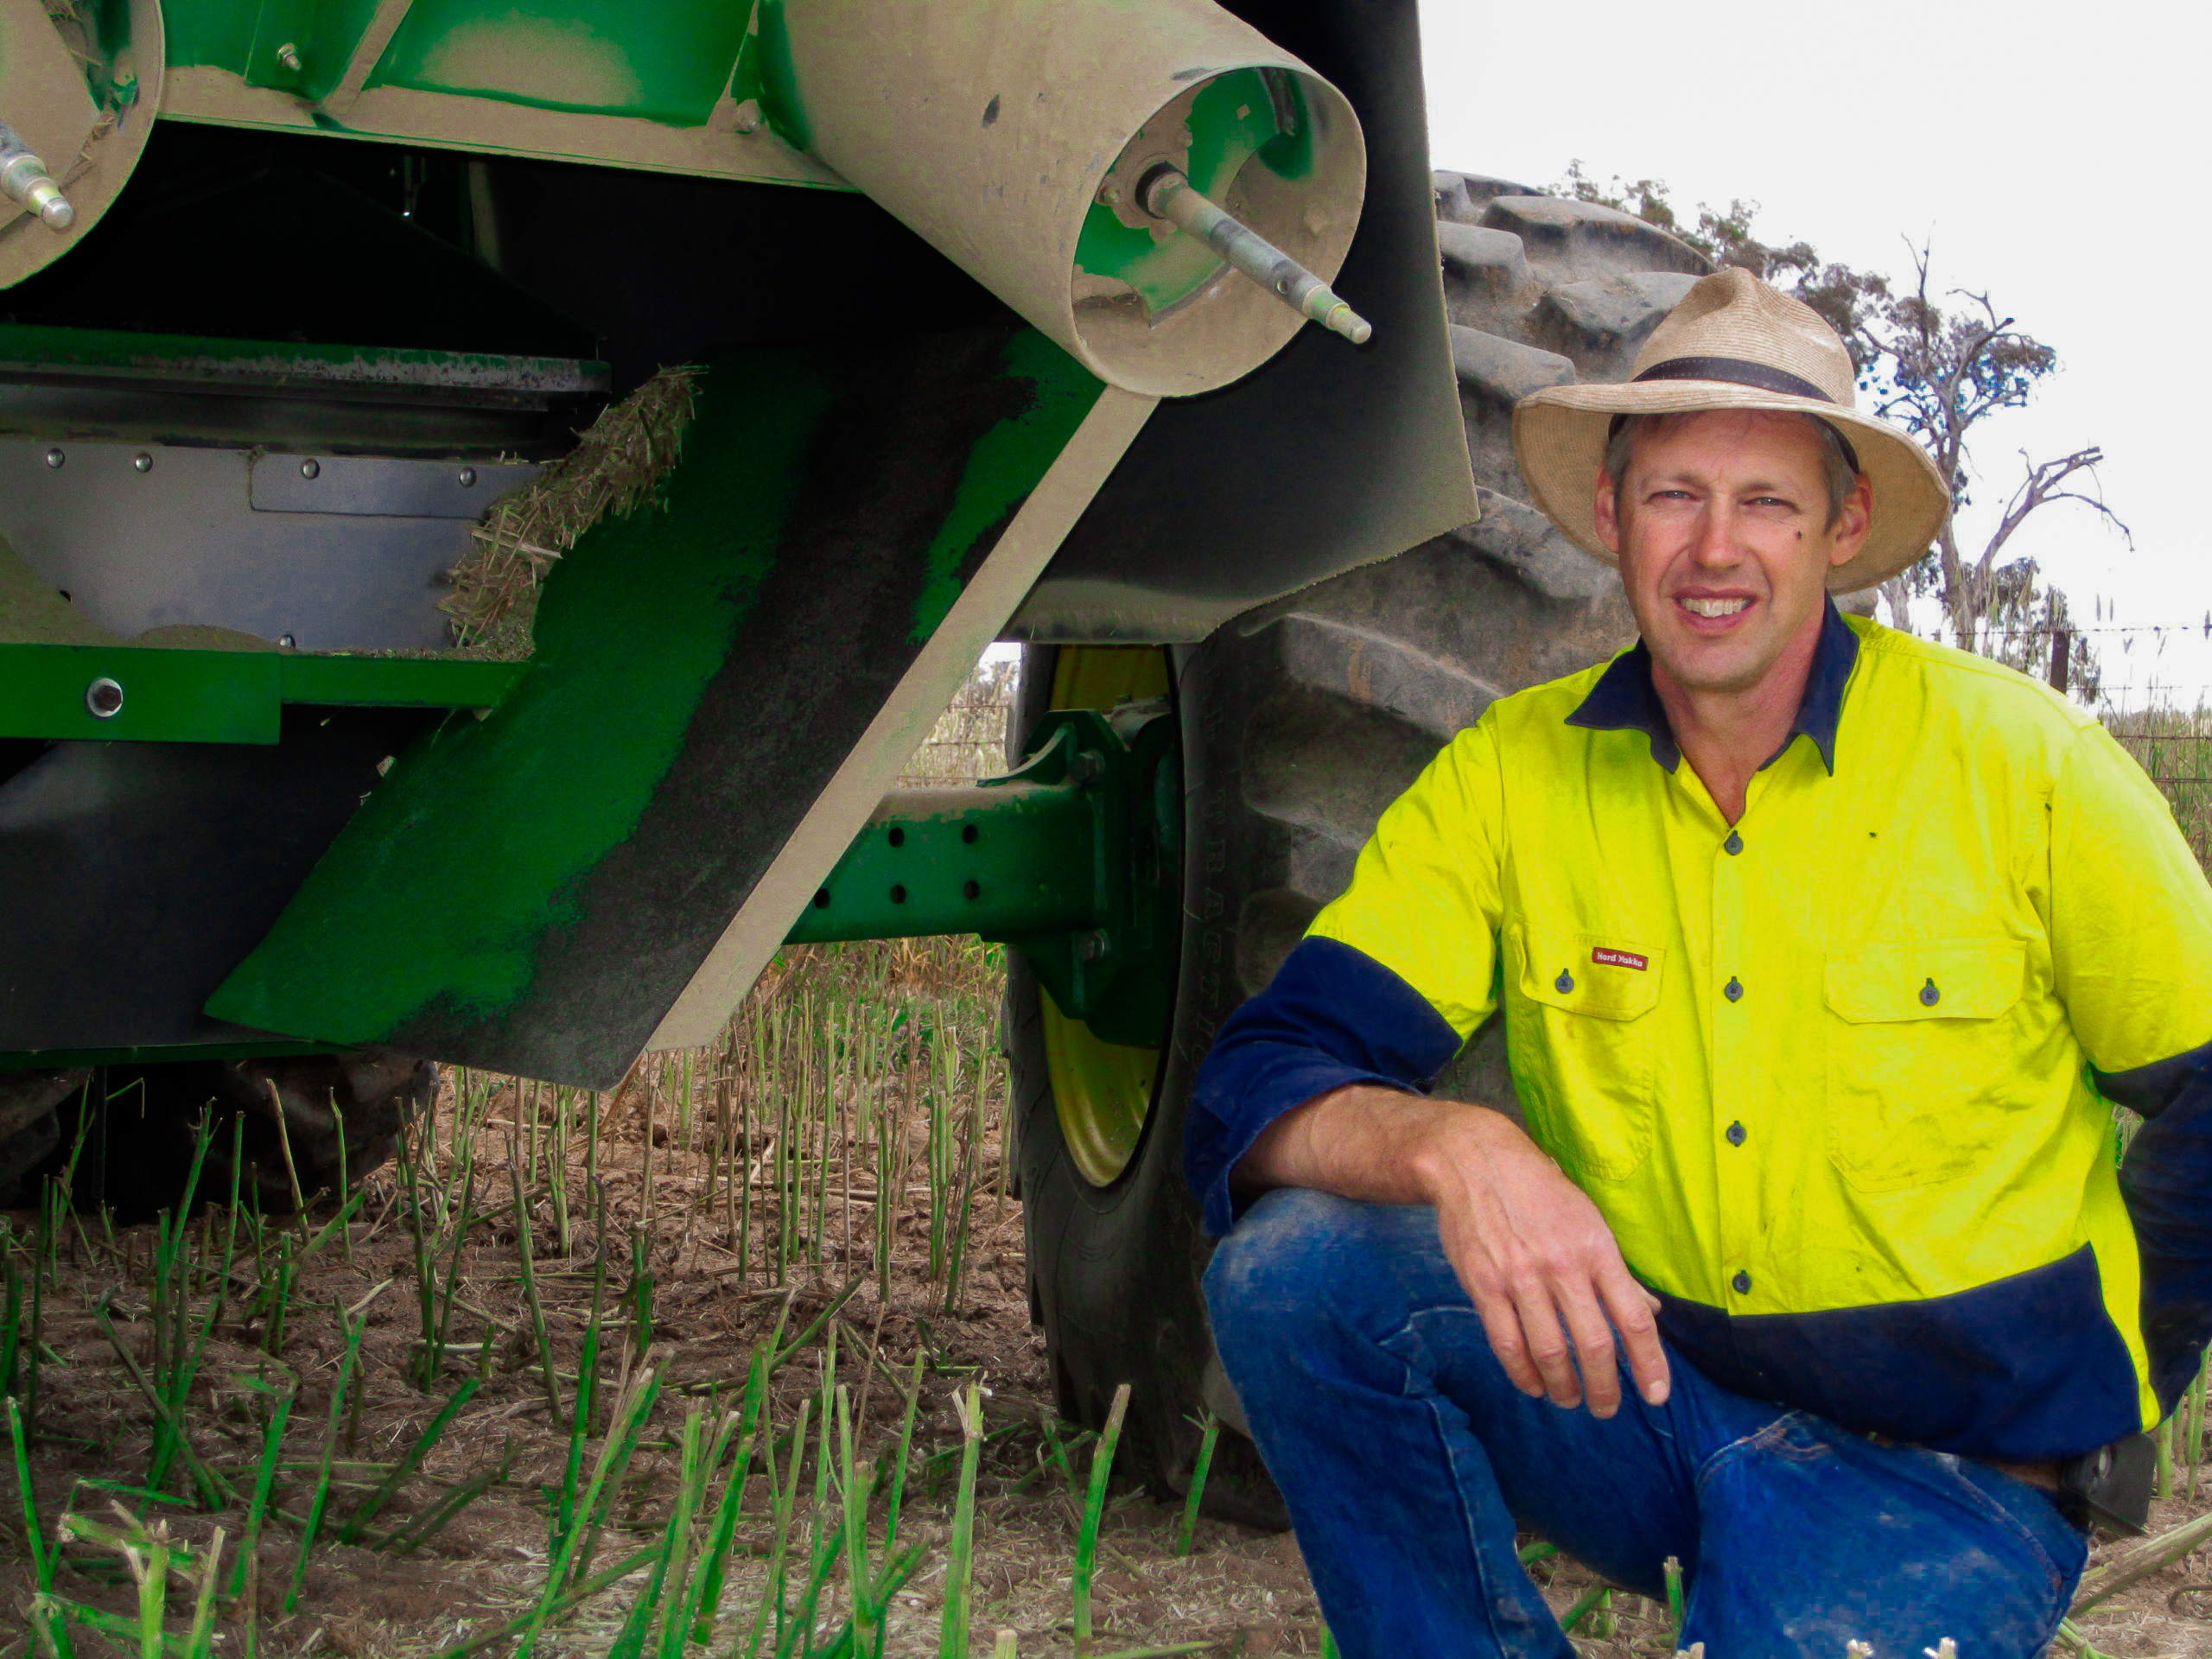 Grazing resistant ryegrass key to weed control success for Scholz family